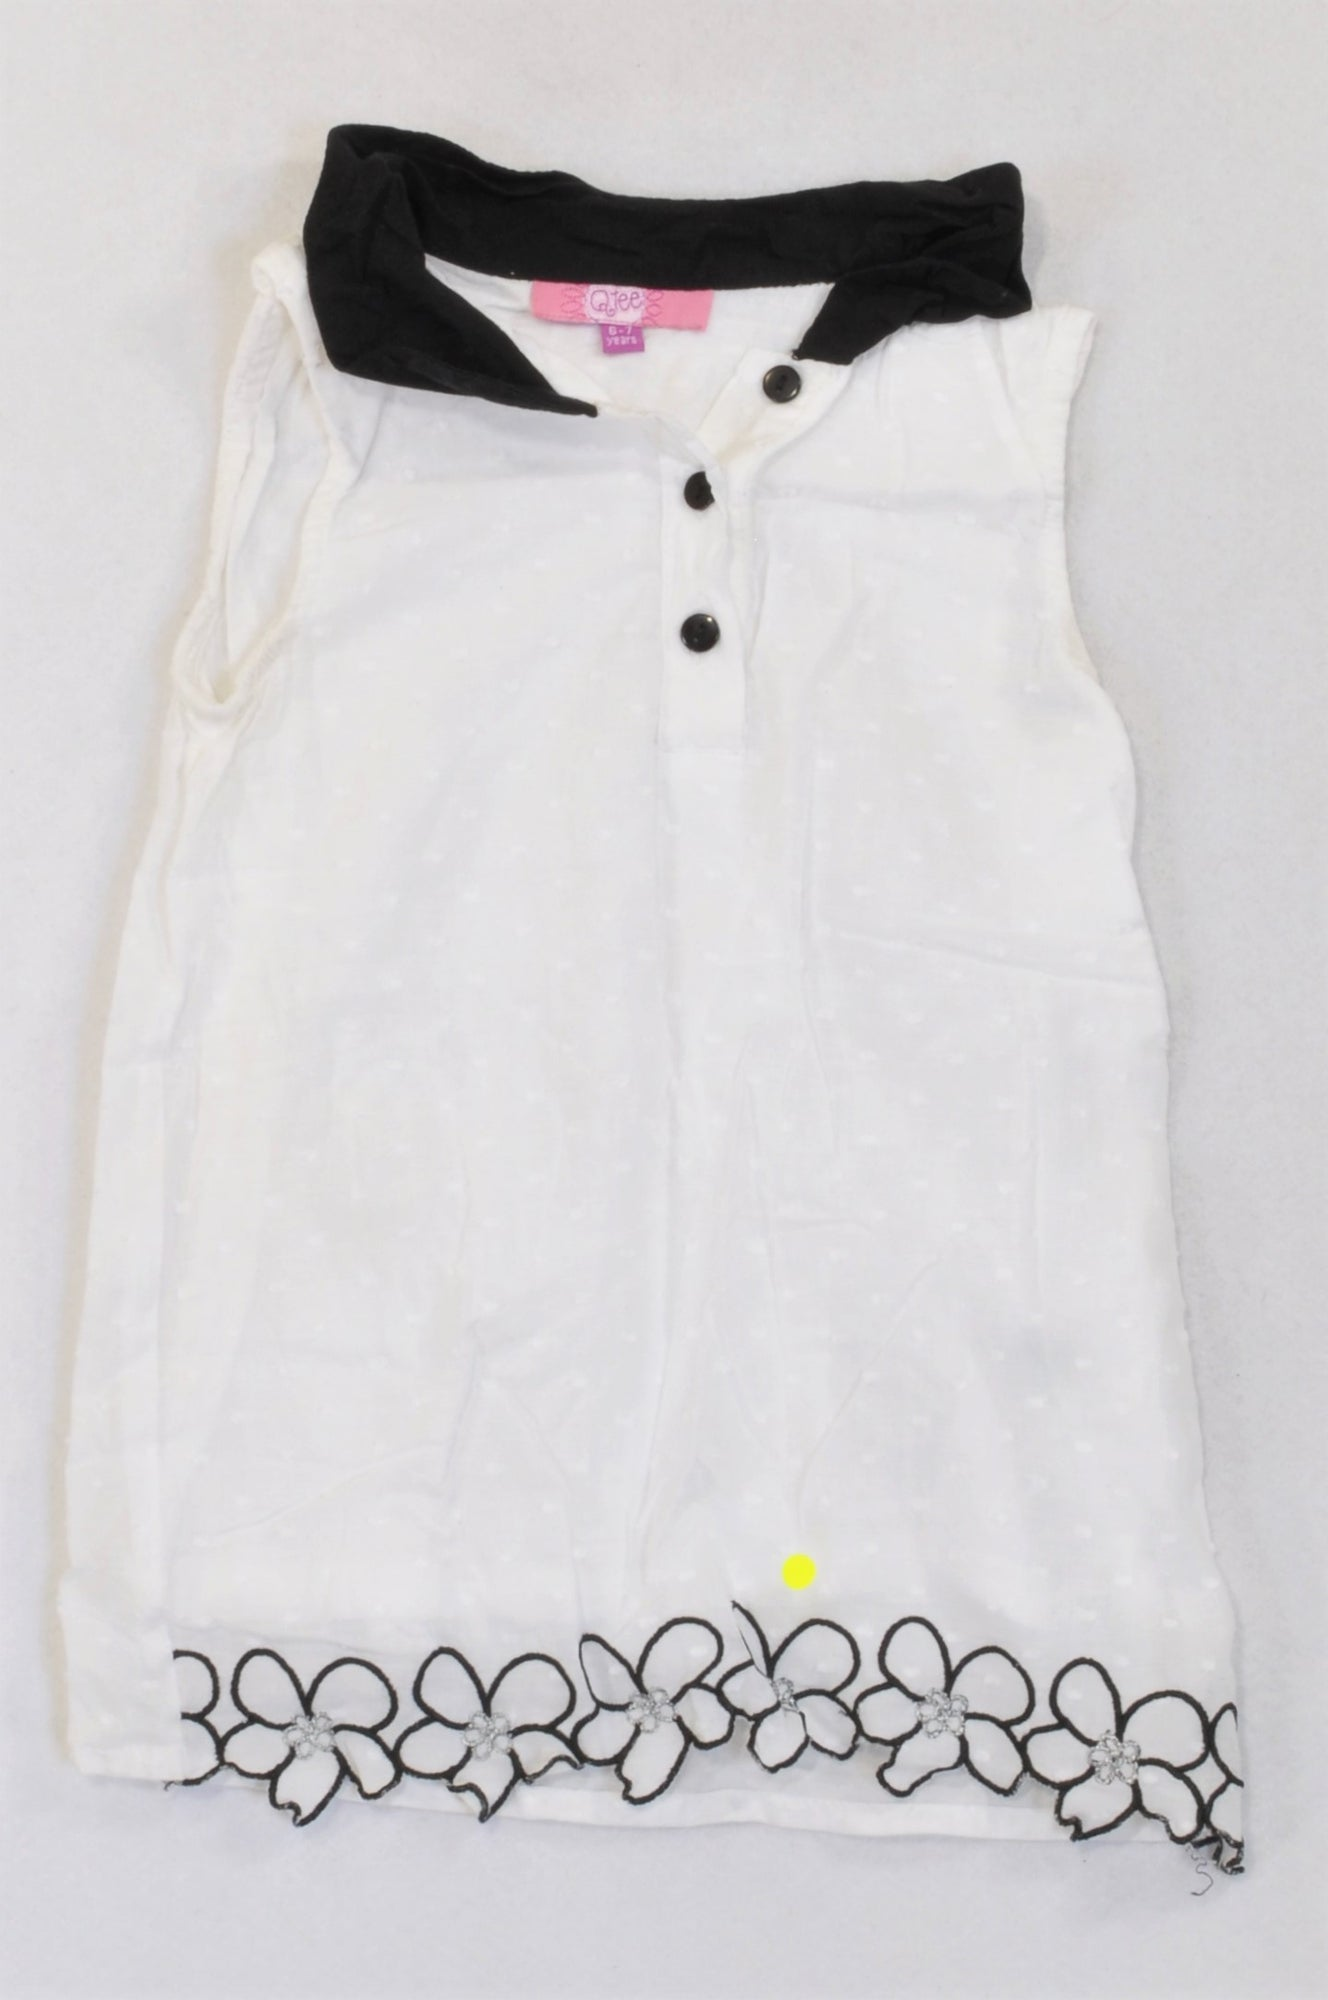 QTee White Pindot Black Embroidered Trim Blouse Girls 6-7 years